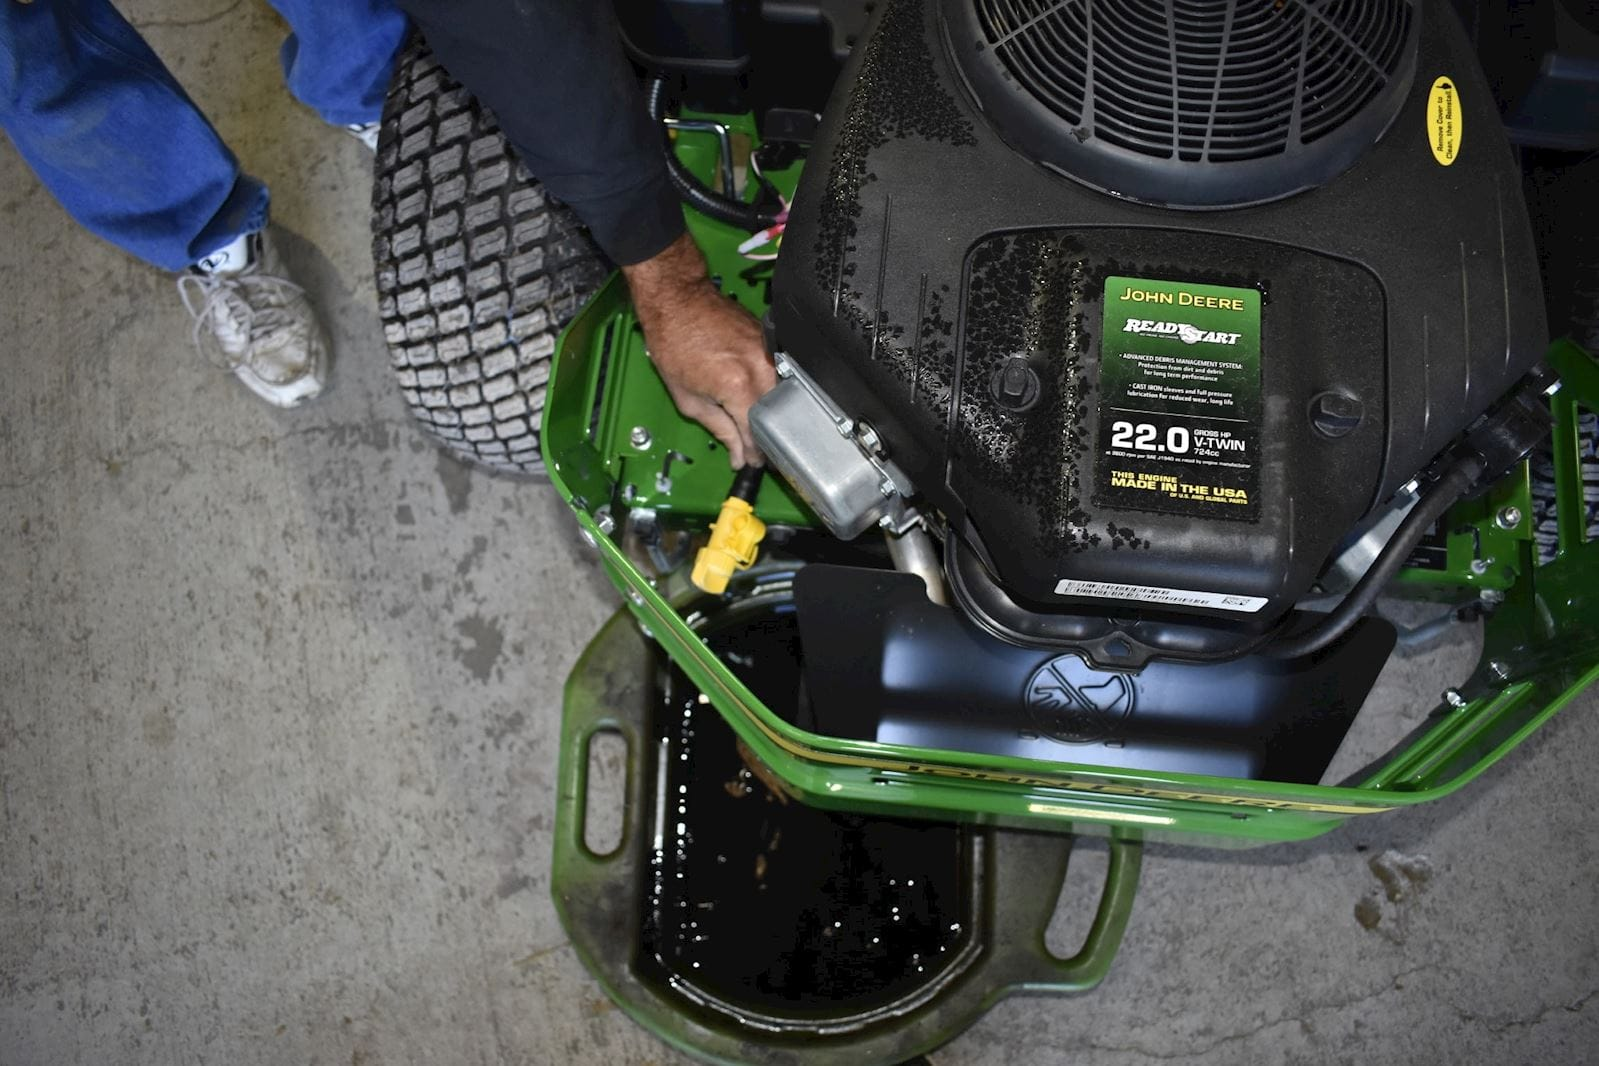 A step-by-step guide to changing the oil in your zero-turn mower, riding mower or compact tractor